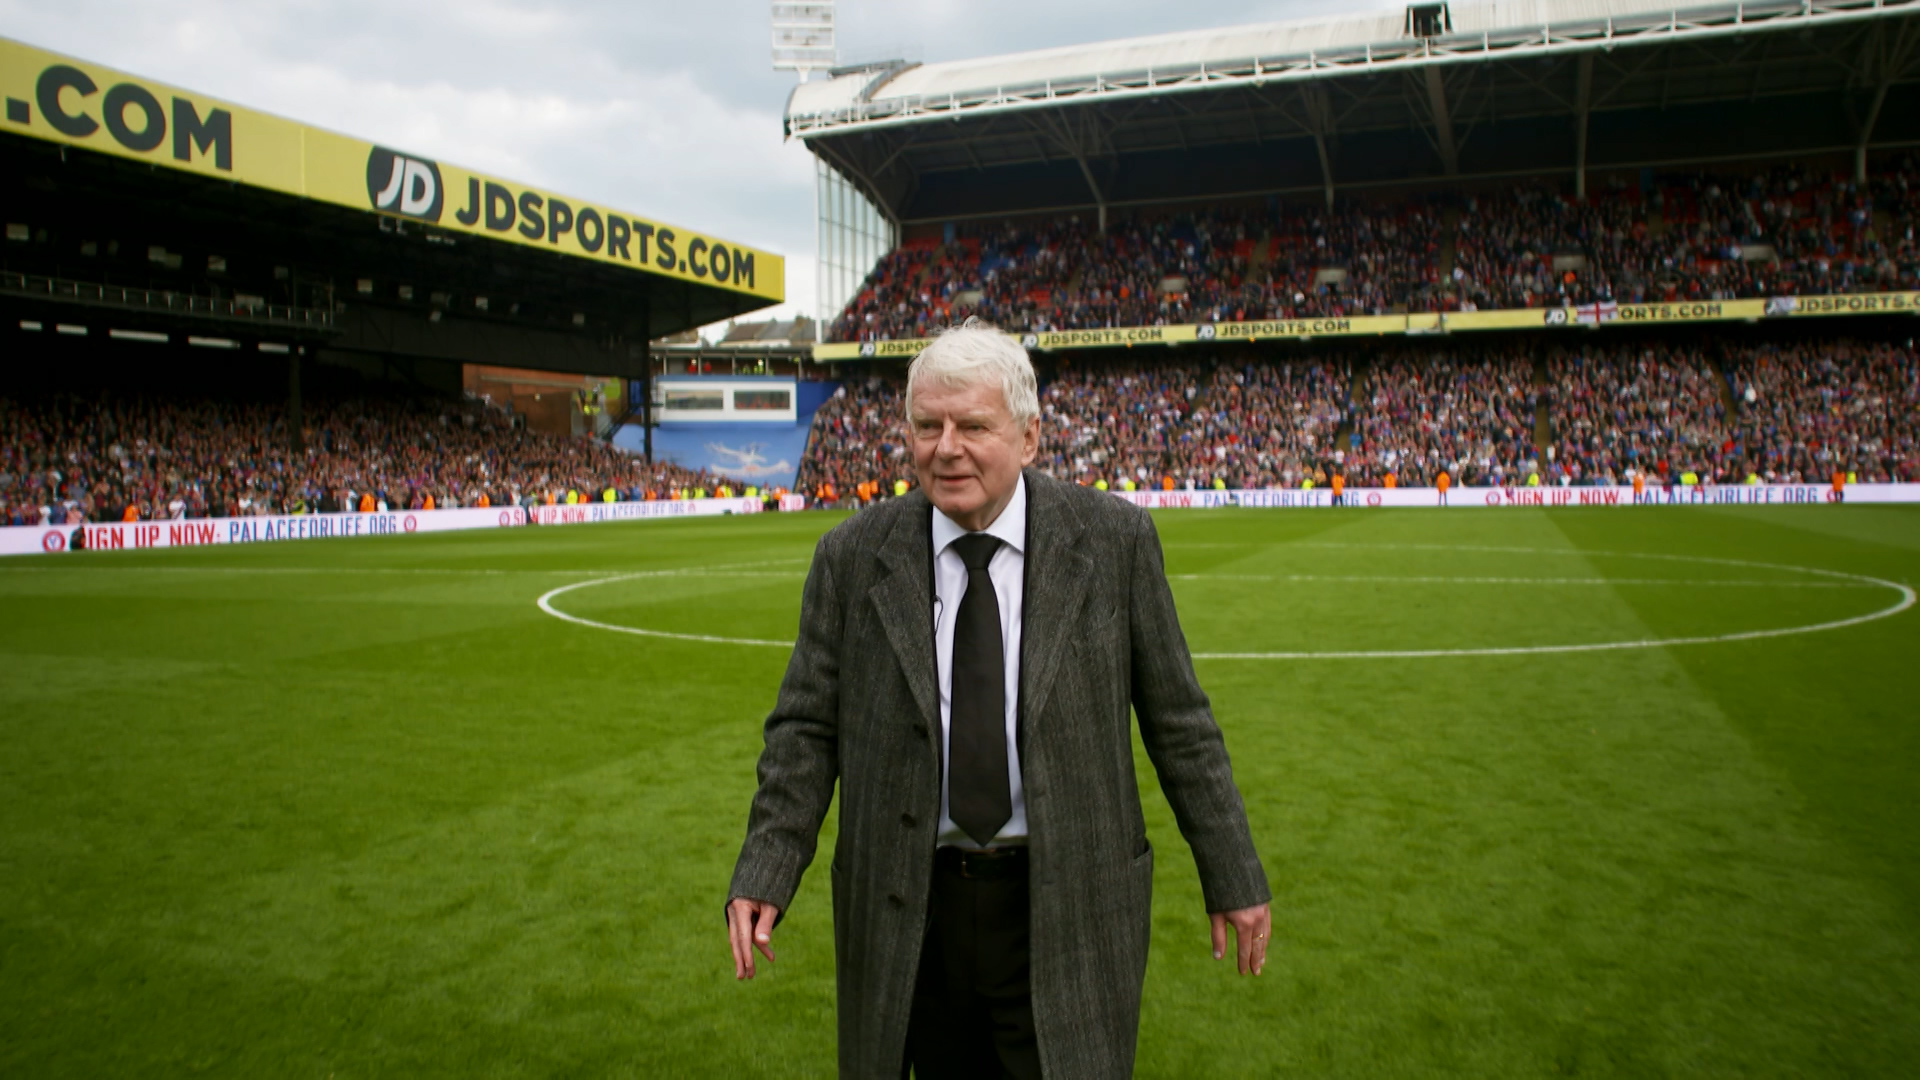 Motty: the man behind the sheepskin - John Motson on the pitch at Selhurst Park